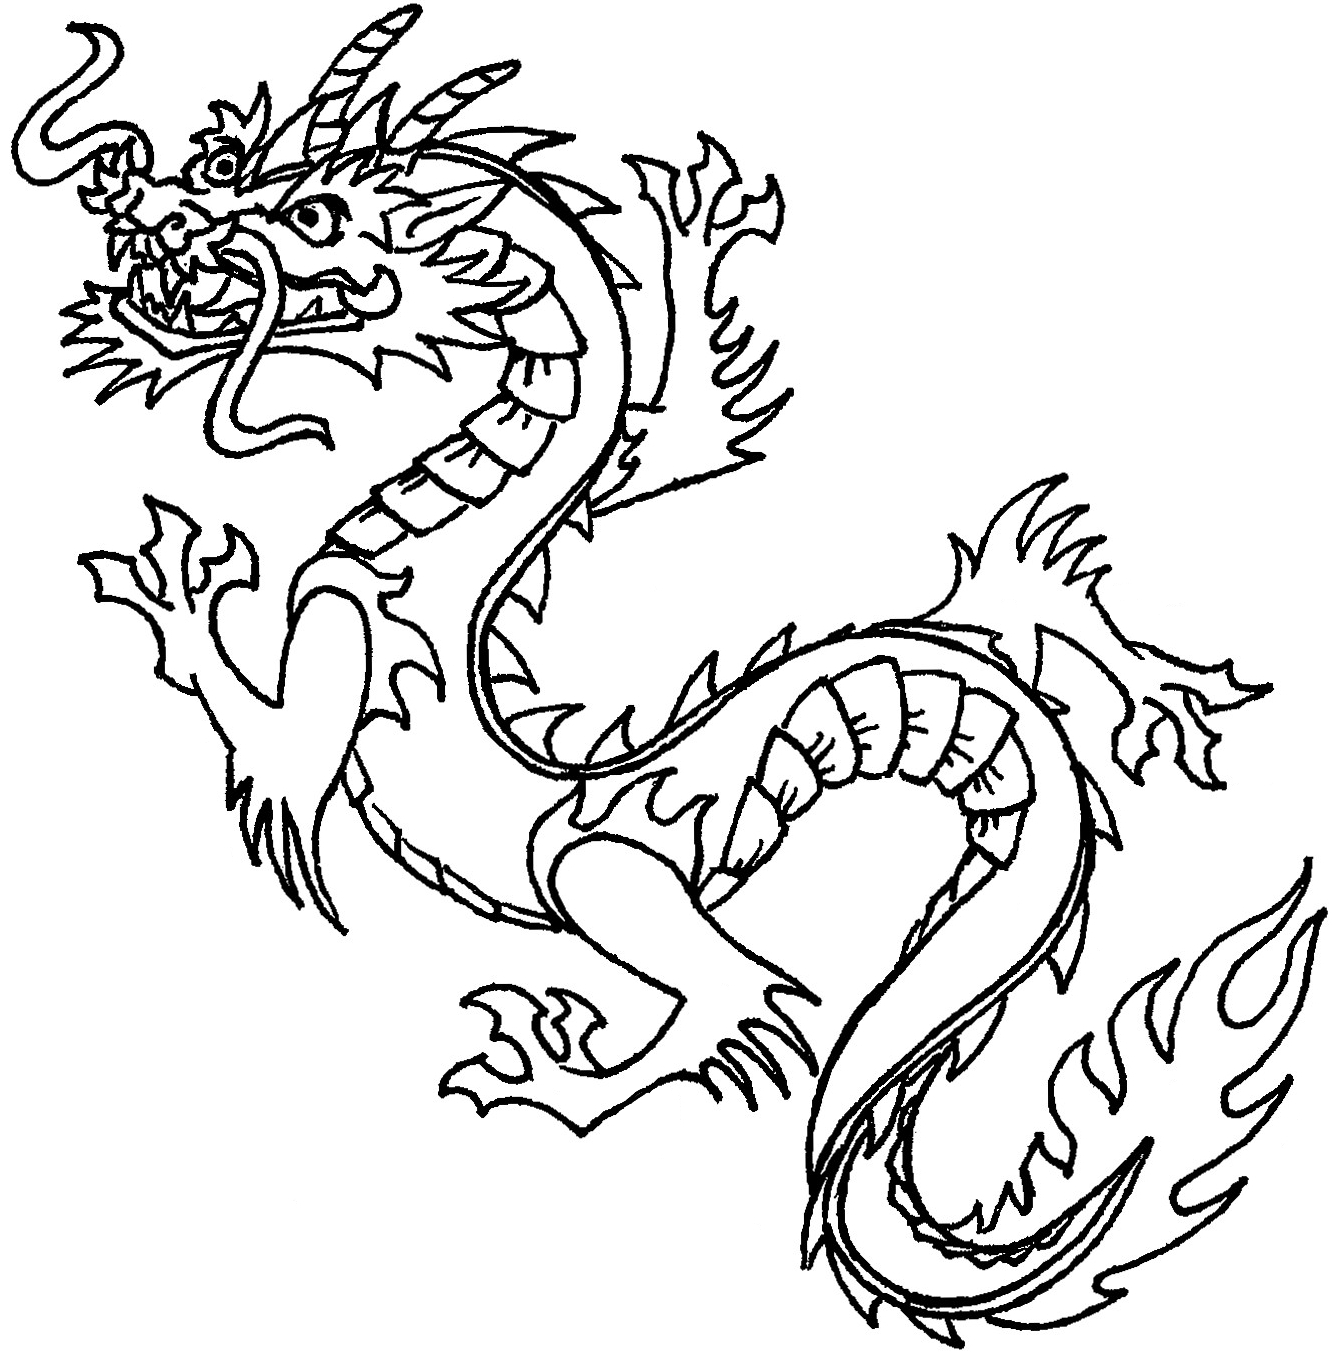 Easy Dragon Drawings Black And White Free Cliparts That You Can